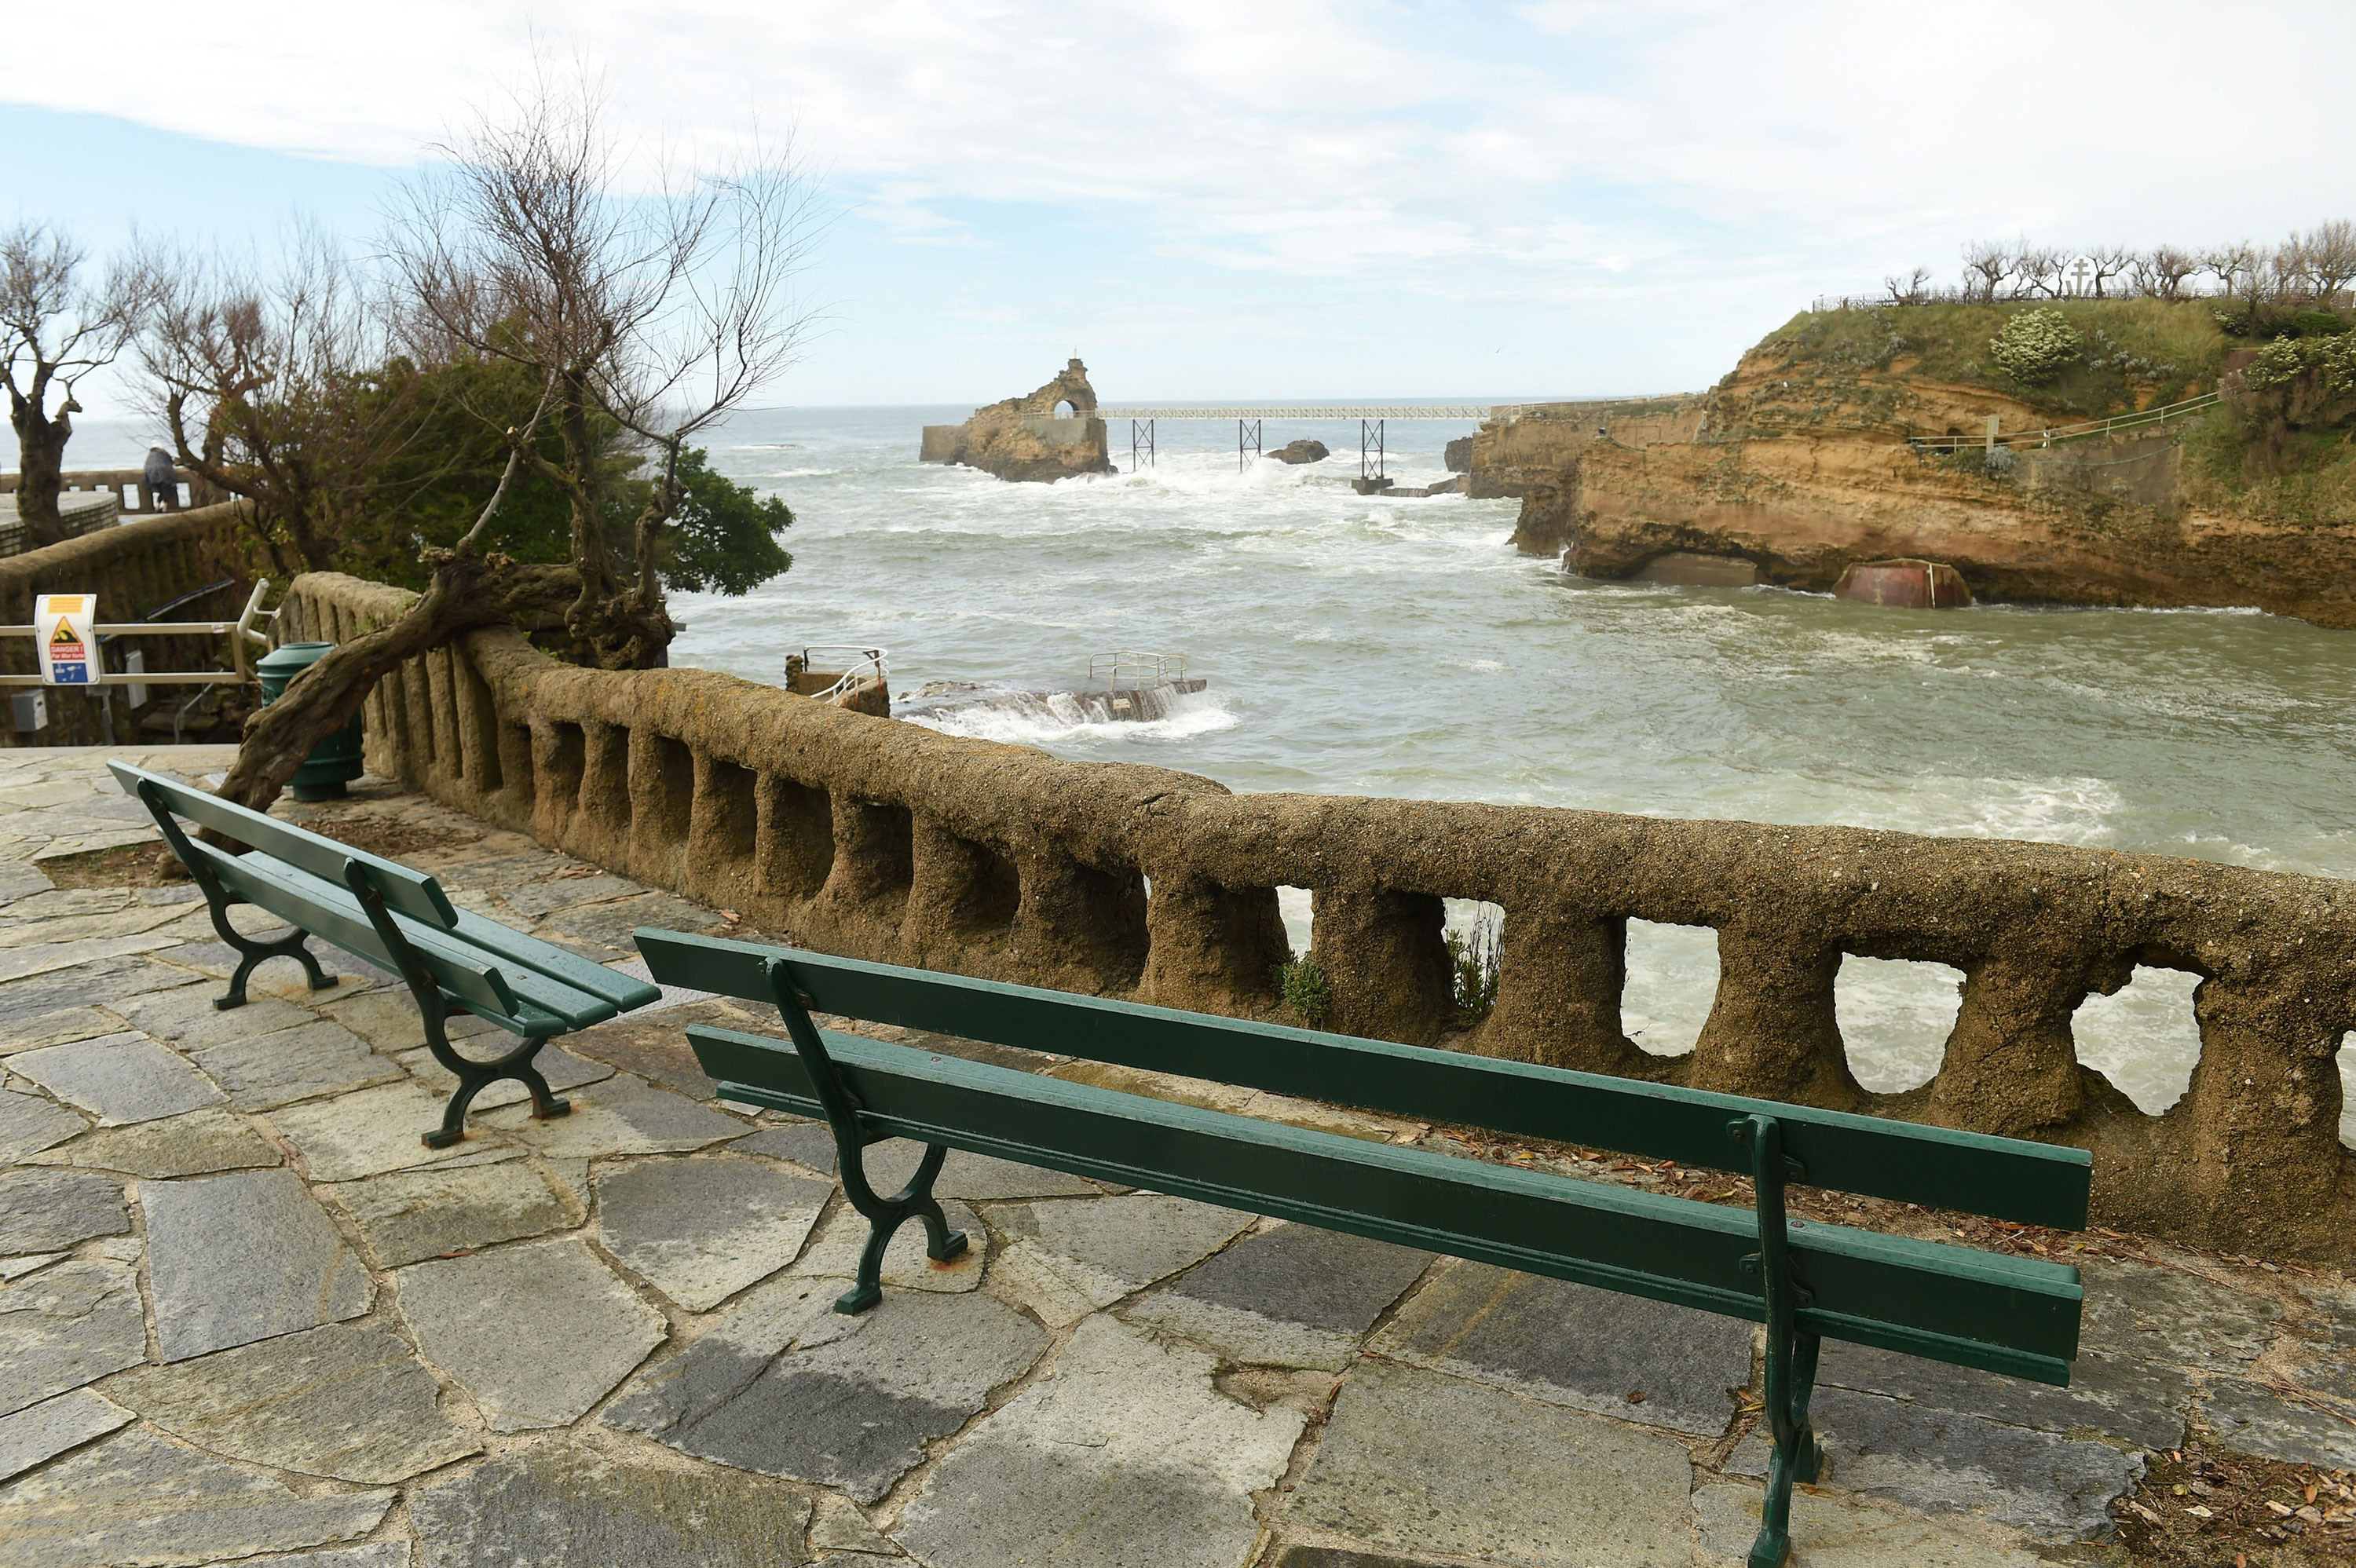 Empty benches are seen at the seafront of Biarritz, France on April 7.